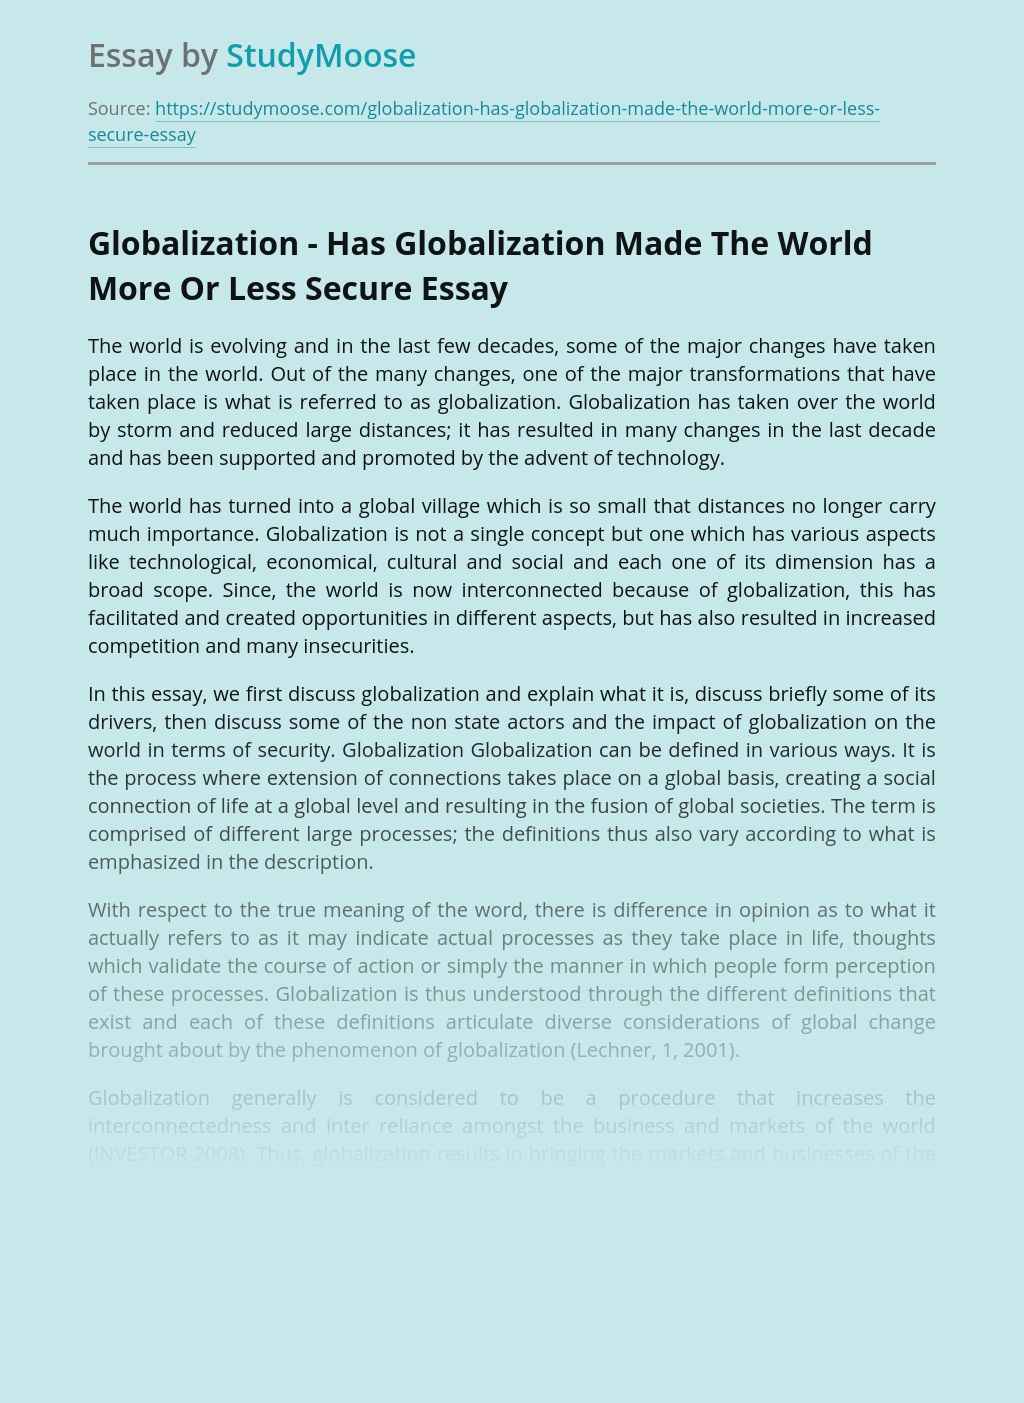 Globalization - Has Globalization Made The World More Or Less Secure